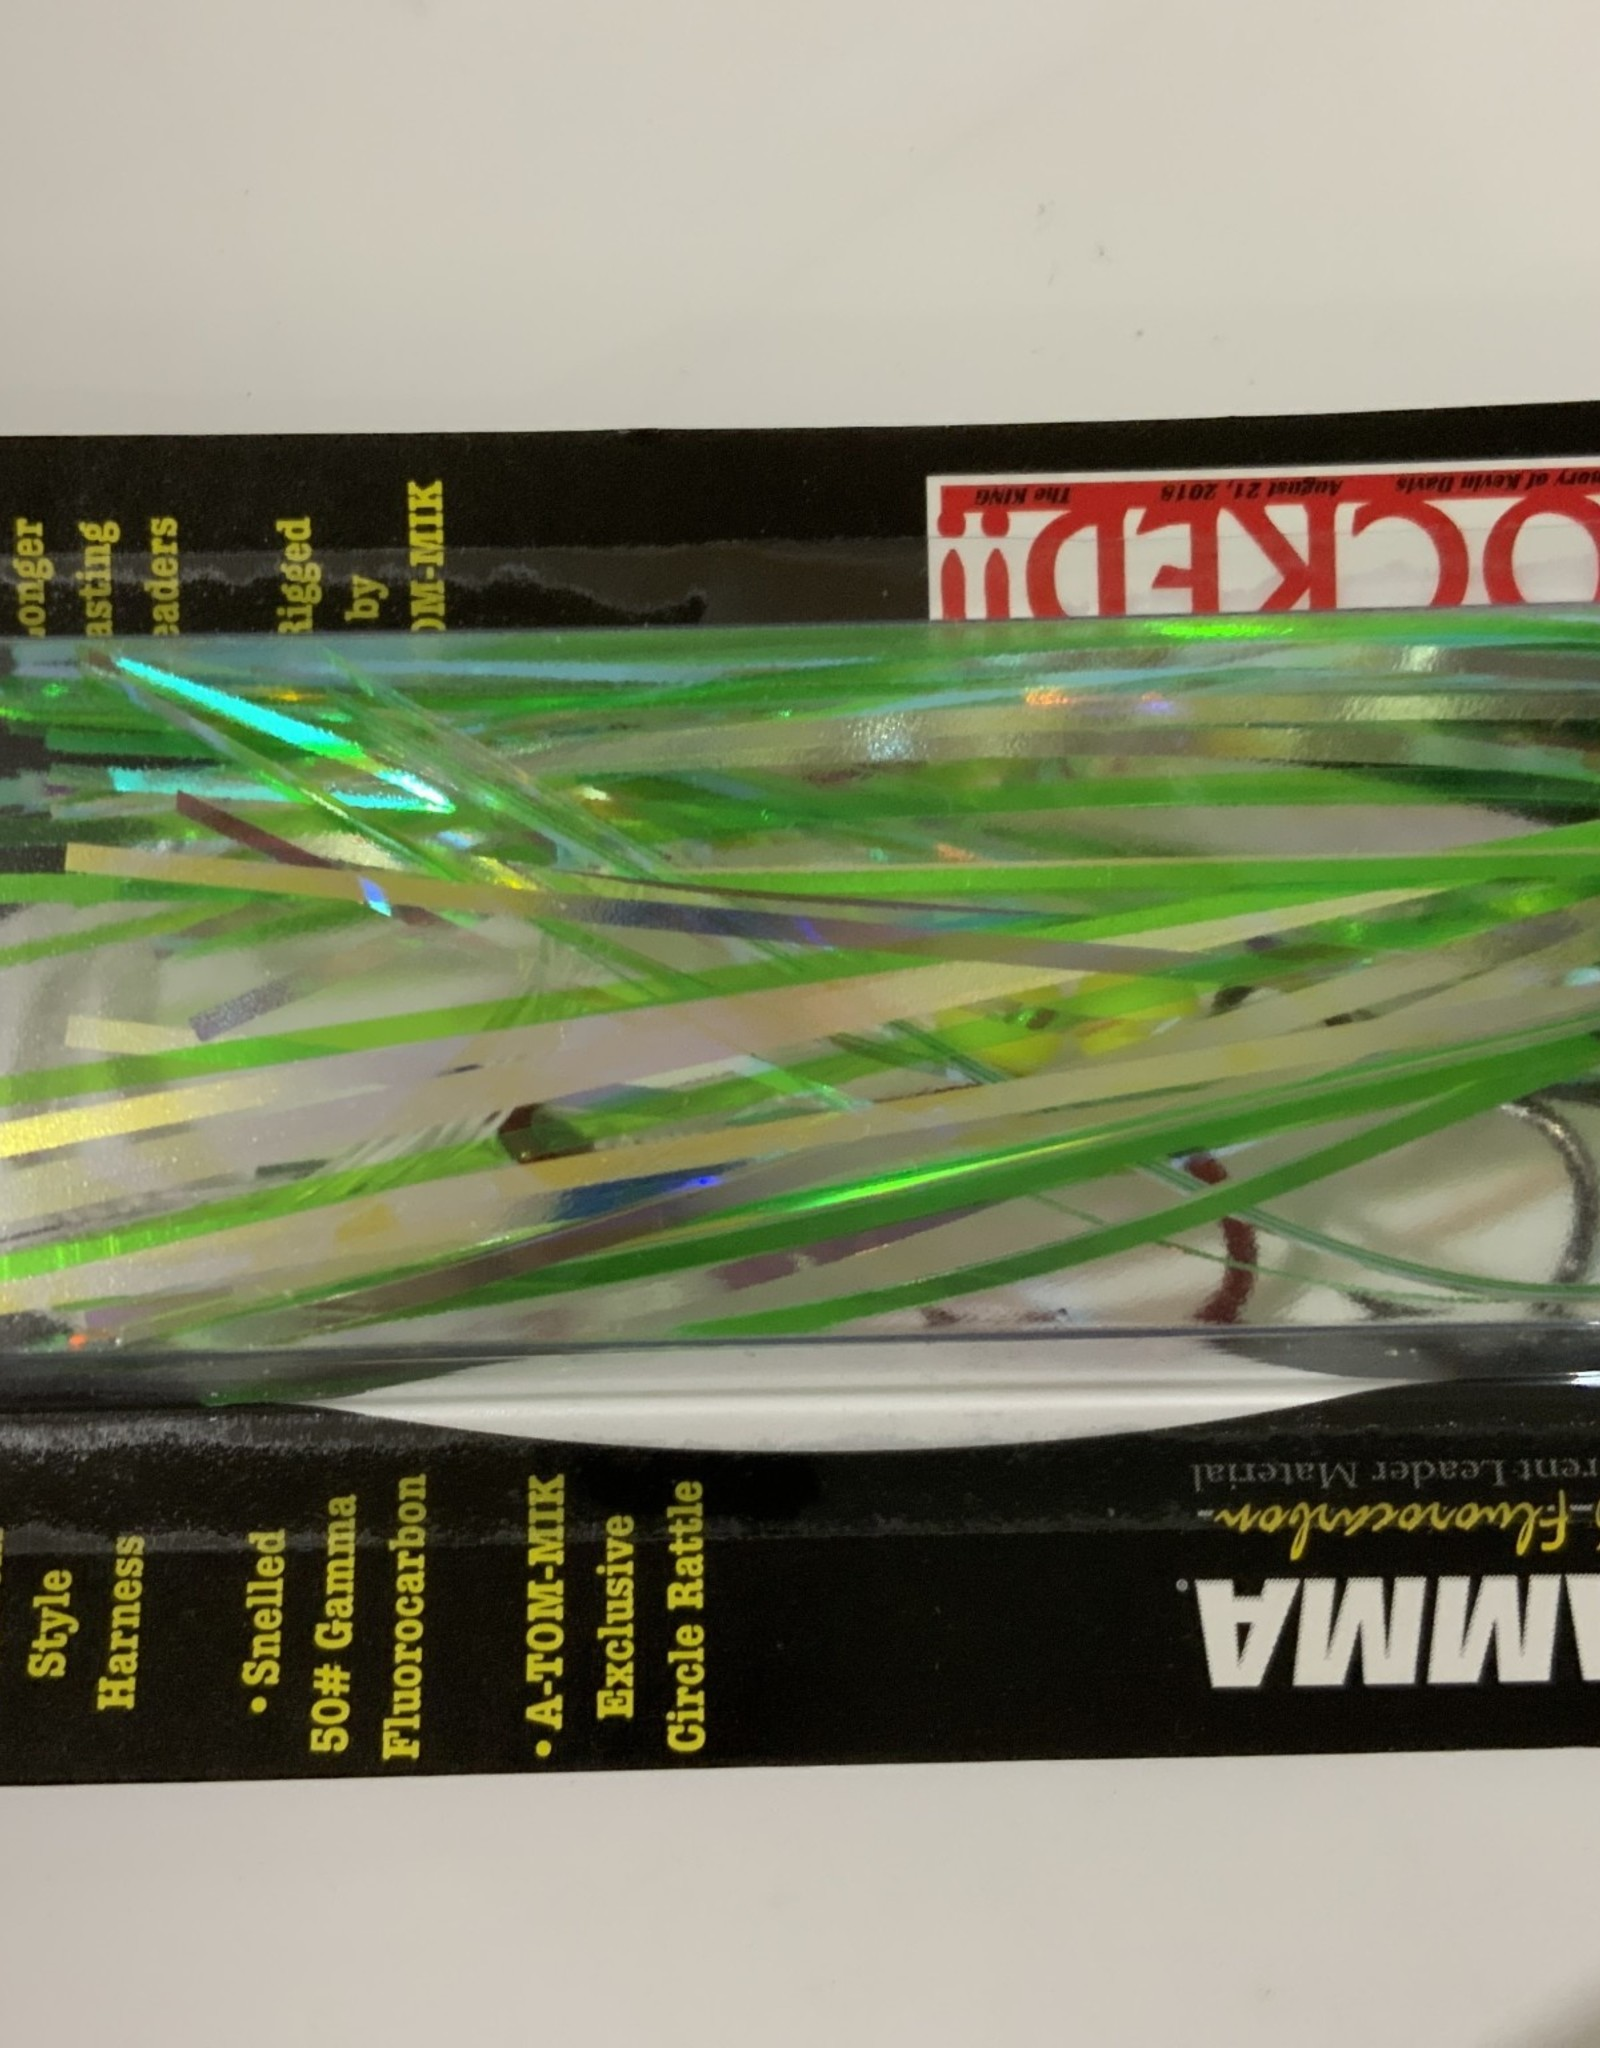 A-TOM-MIK MFG. A-TOM-MIK TOURNAMENT RIGGED TROLLING FLY- PRO/AM FLY  T-126